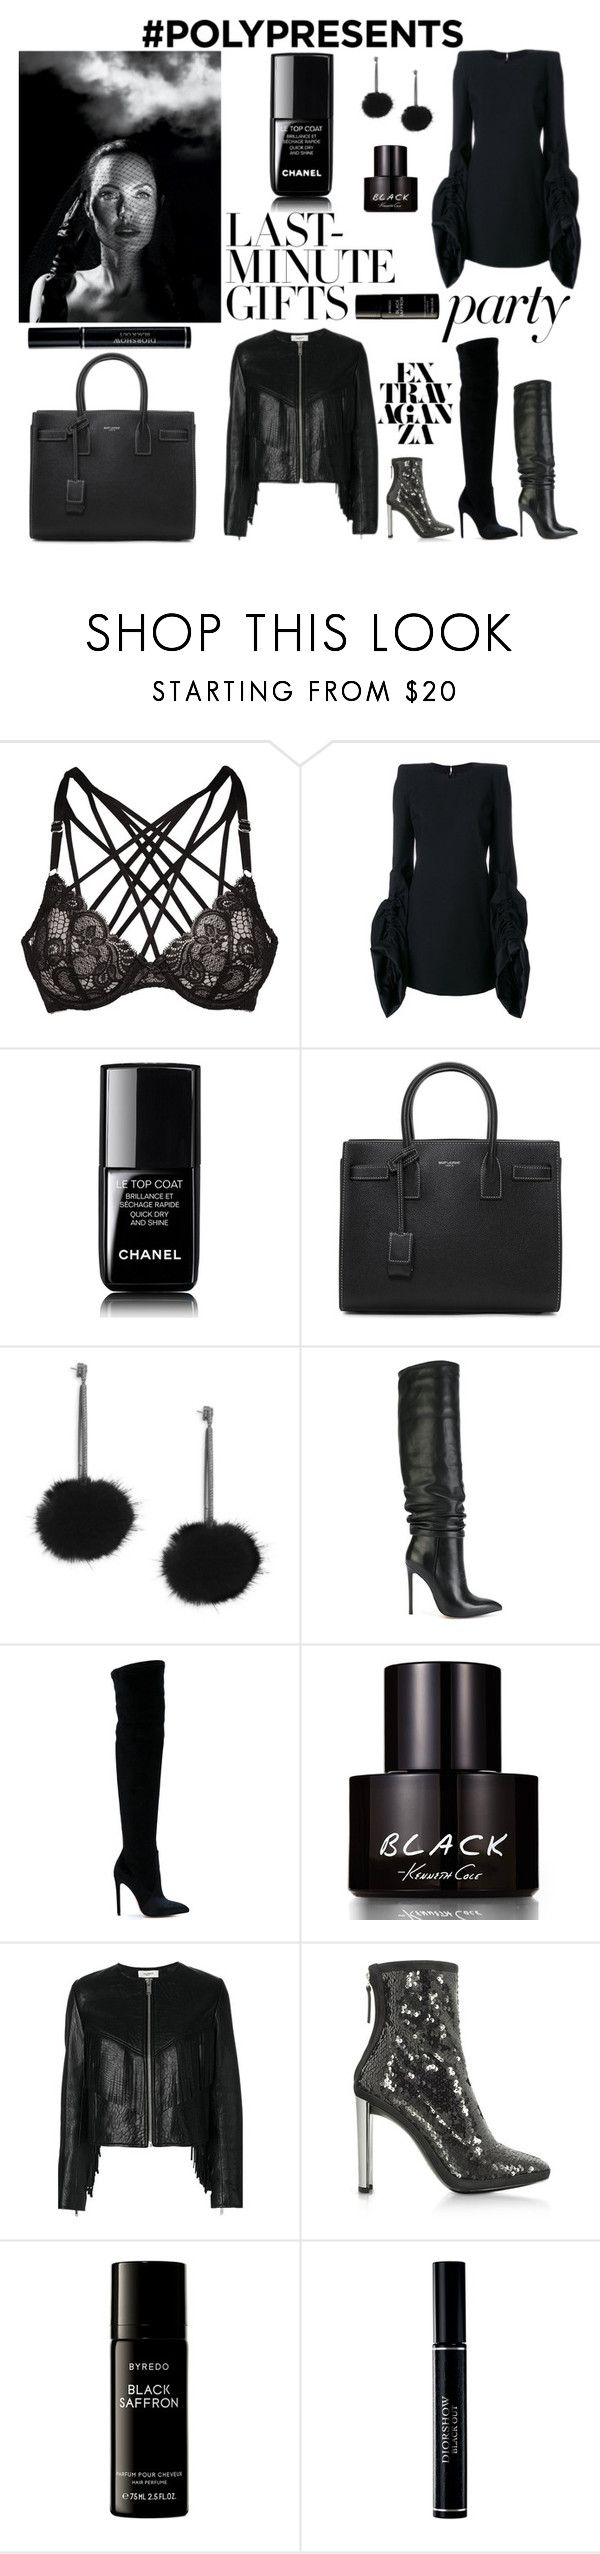 """#PolyPresents: Last-Minute Gifts"" by fpb173 on Polyvore featuring moda, Agent Provocateur, Yves Saint Laurent, Chanel, Adriana Orsini, Gianni Renzi, Kenneth Cole, Étoile Isabel Marant, Giuseppe Zanotti e Byredo"